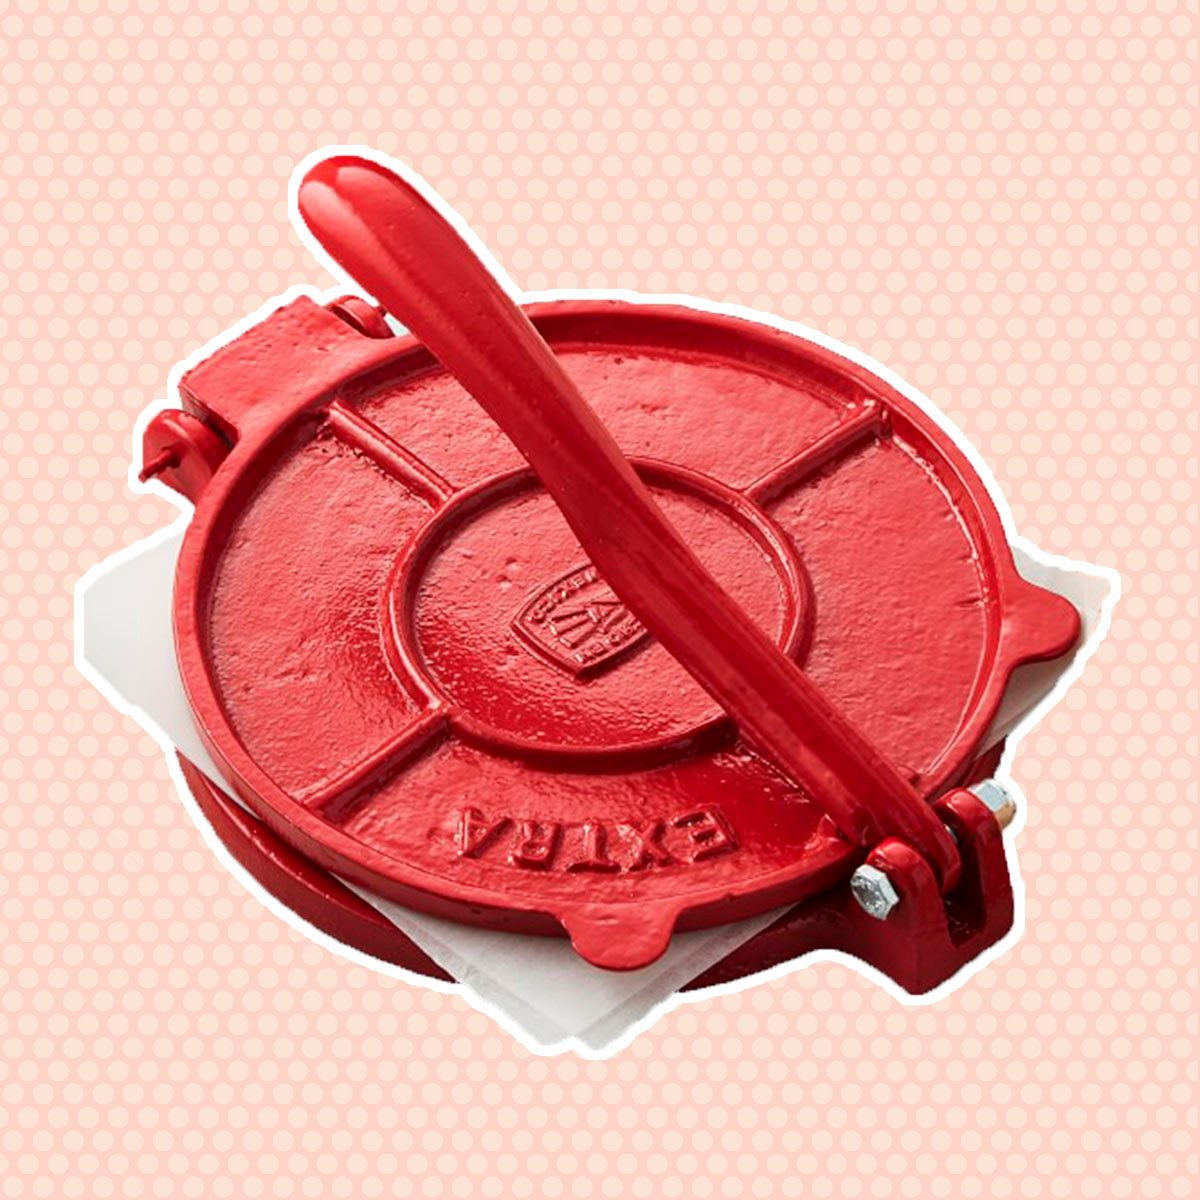 Cast-Iron Tortilla Press, Red